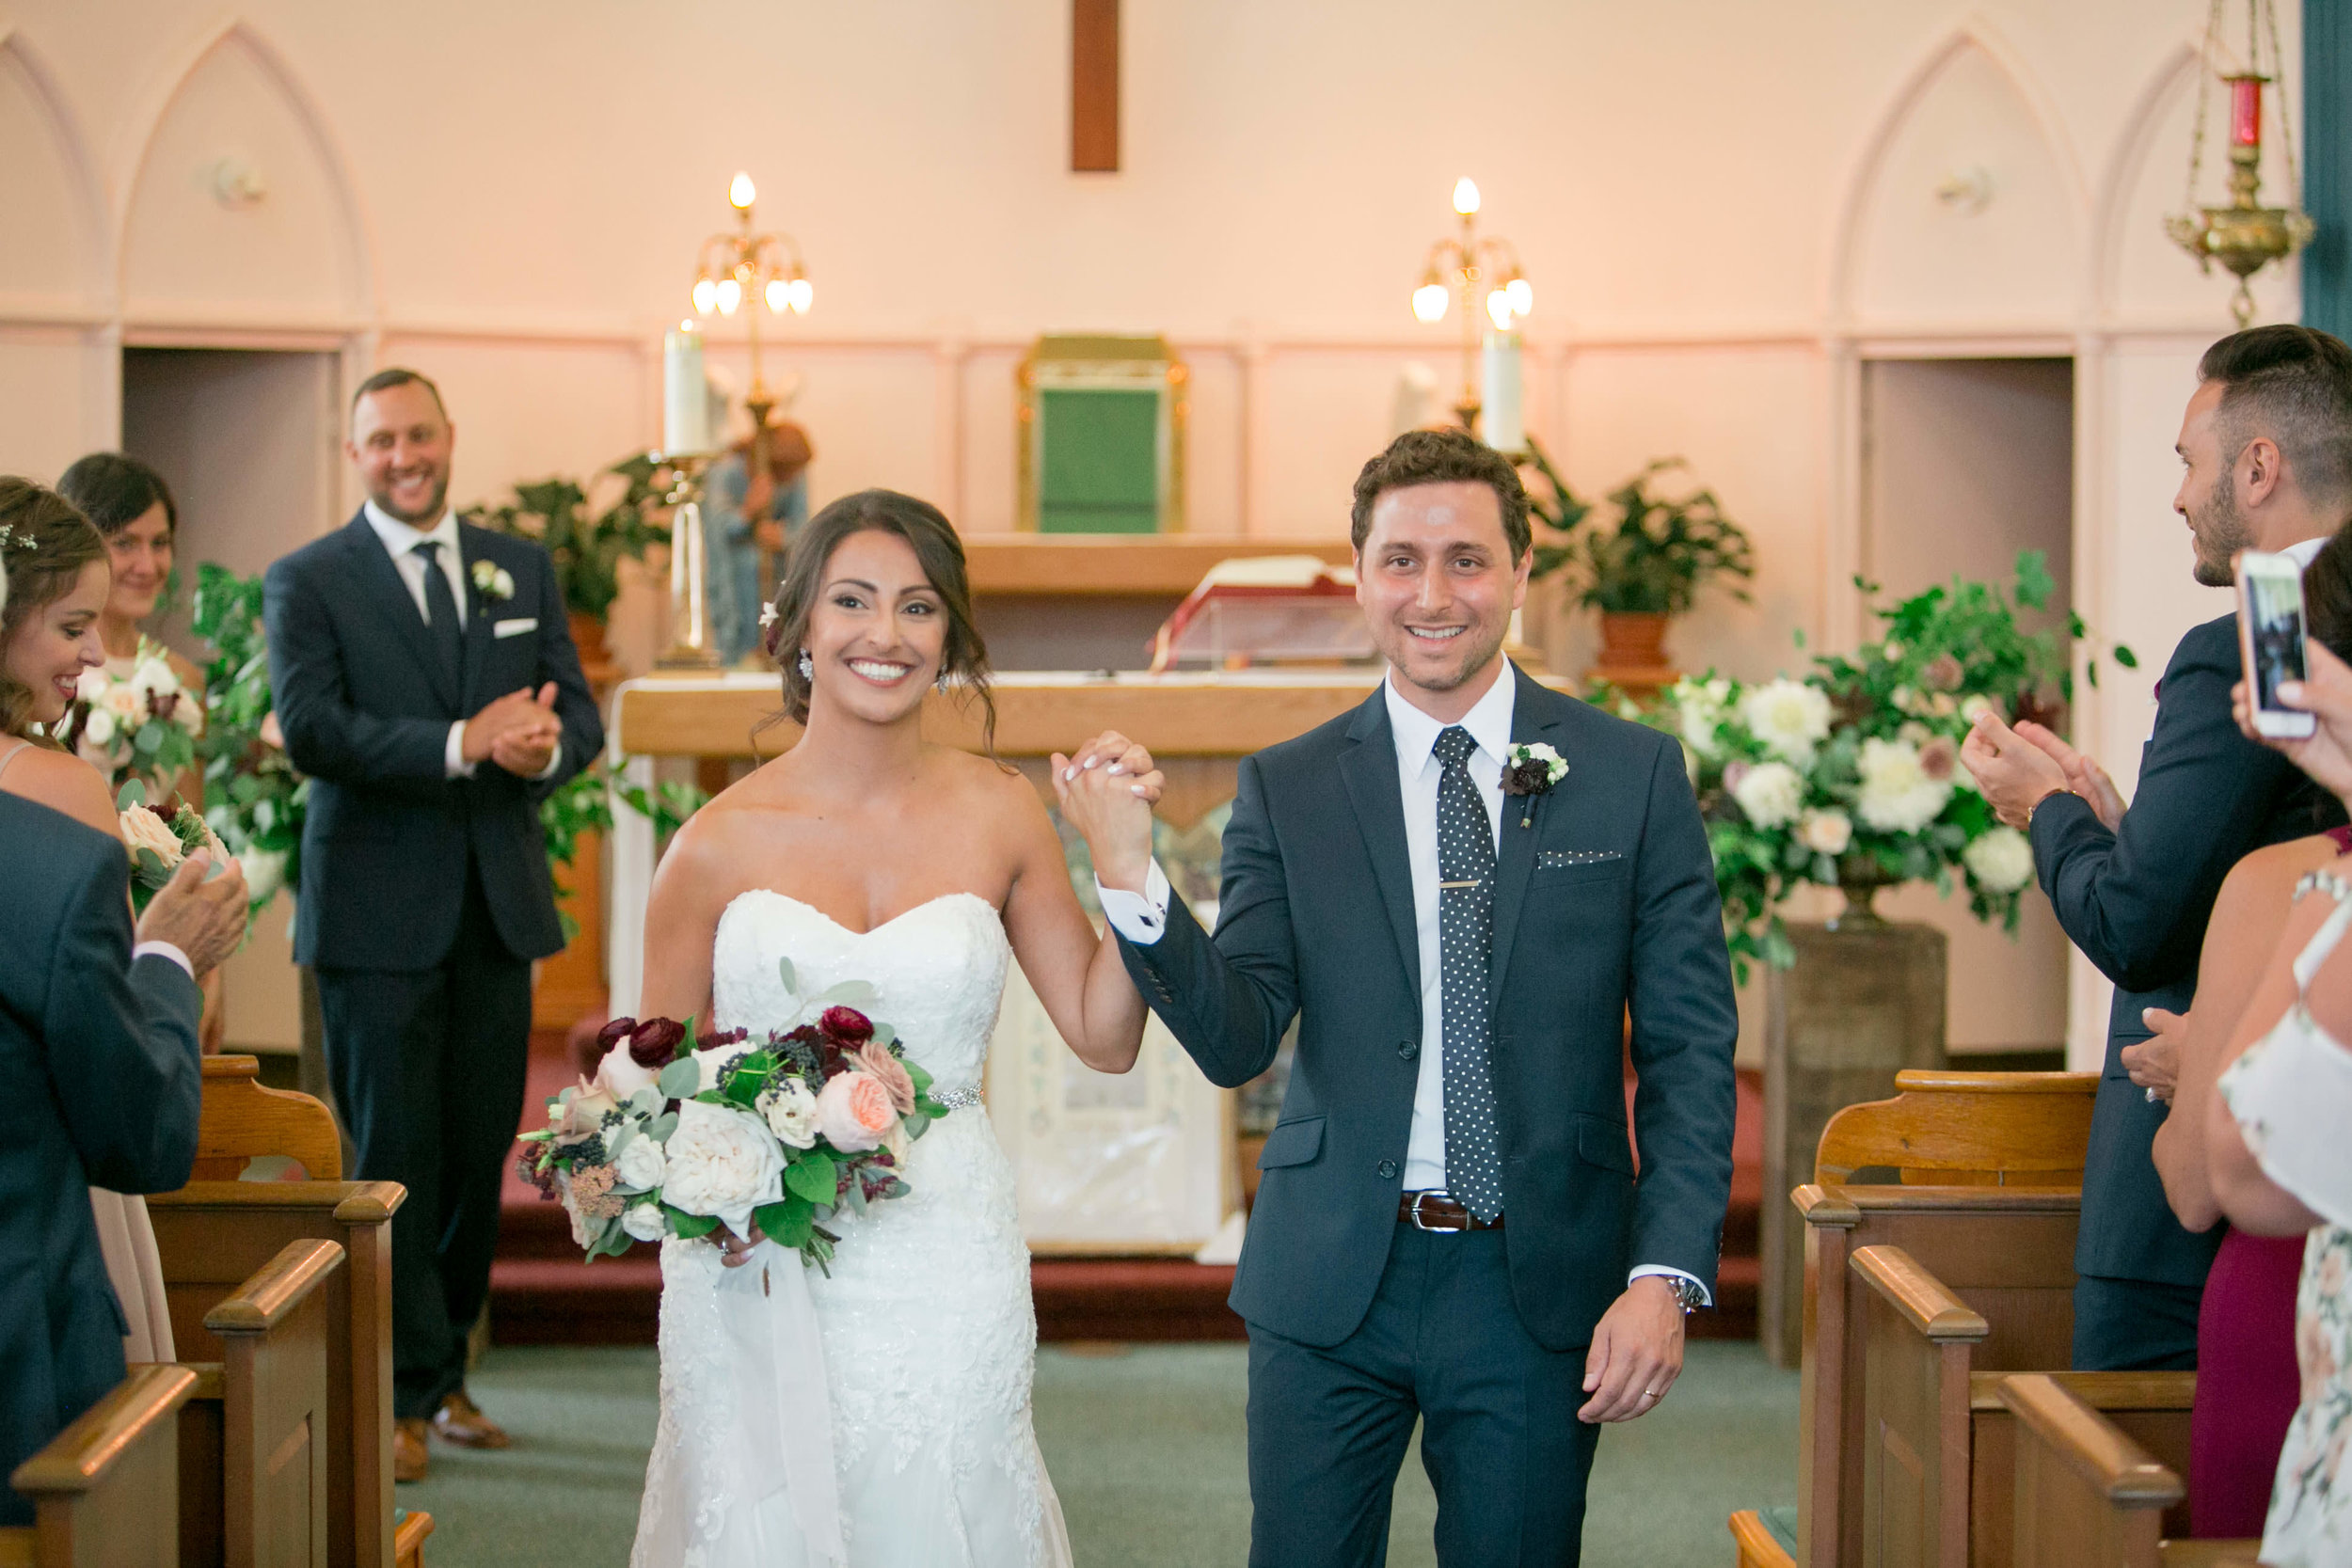 Sabrina___Jonathan_Wedding___High_Res._Finals_Daniel_Ricci_Weddings_331.jpg